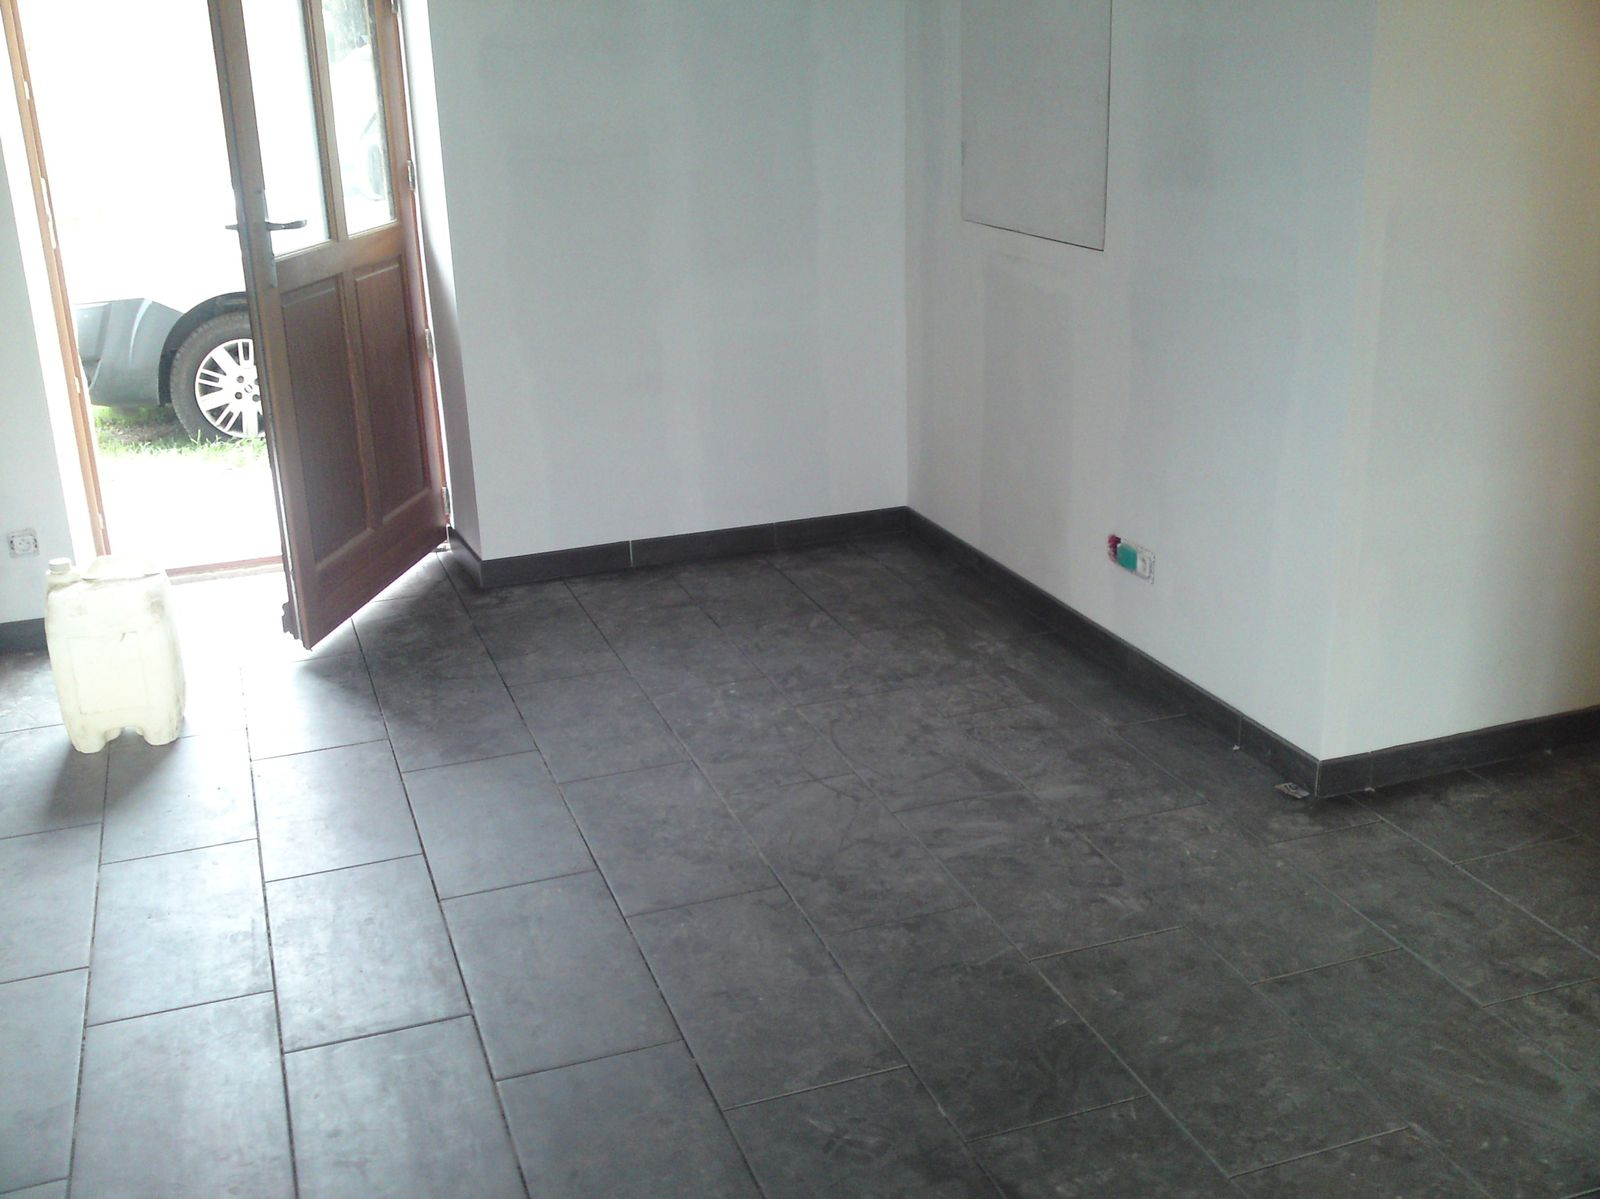 Pose des plinthes renovation d 39 une fermette en bourgogne for Pose de plinthe carrelage angle